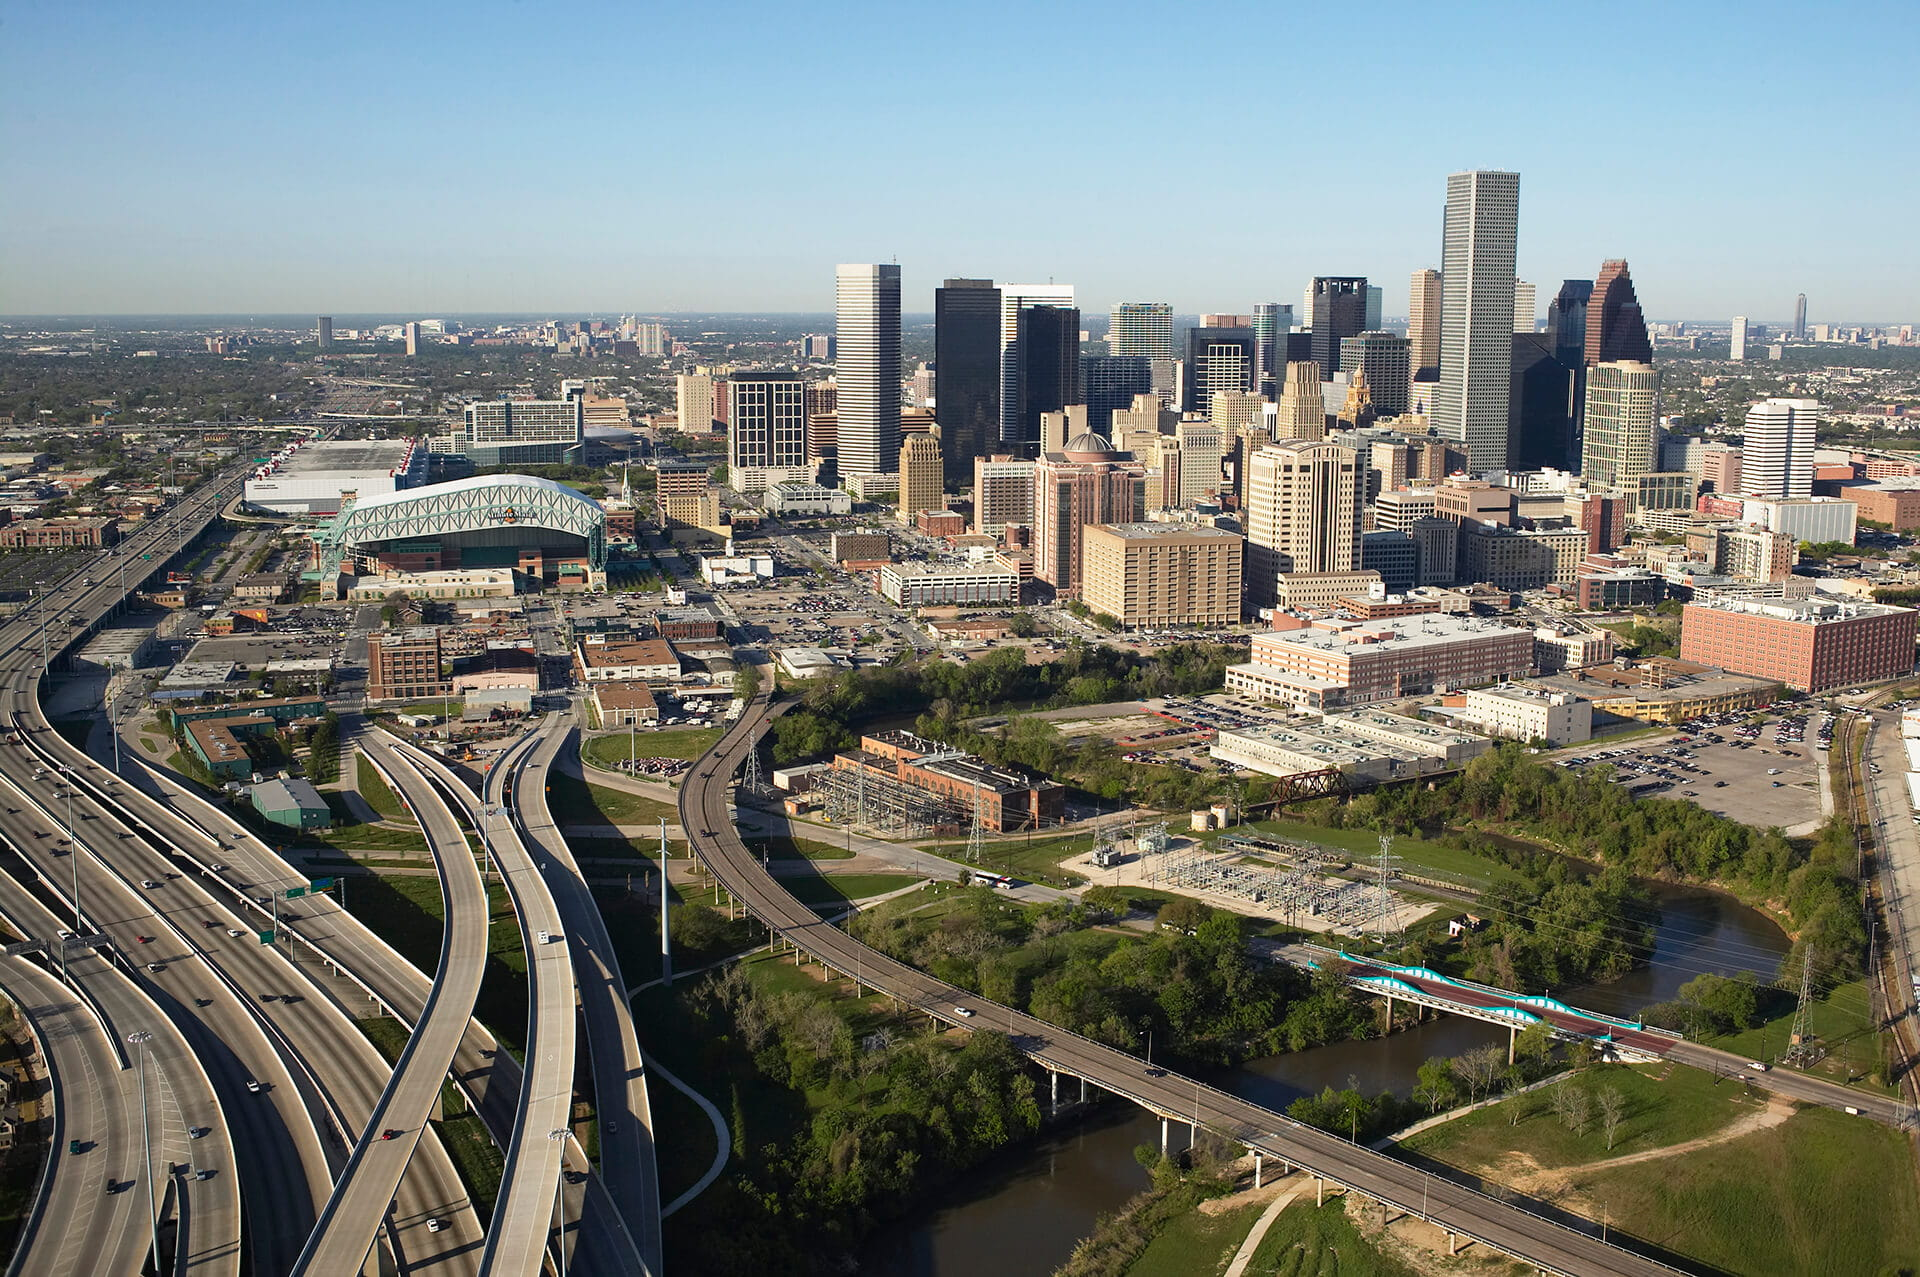 Aerial view of Houston